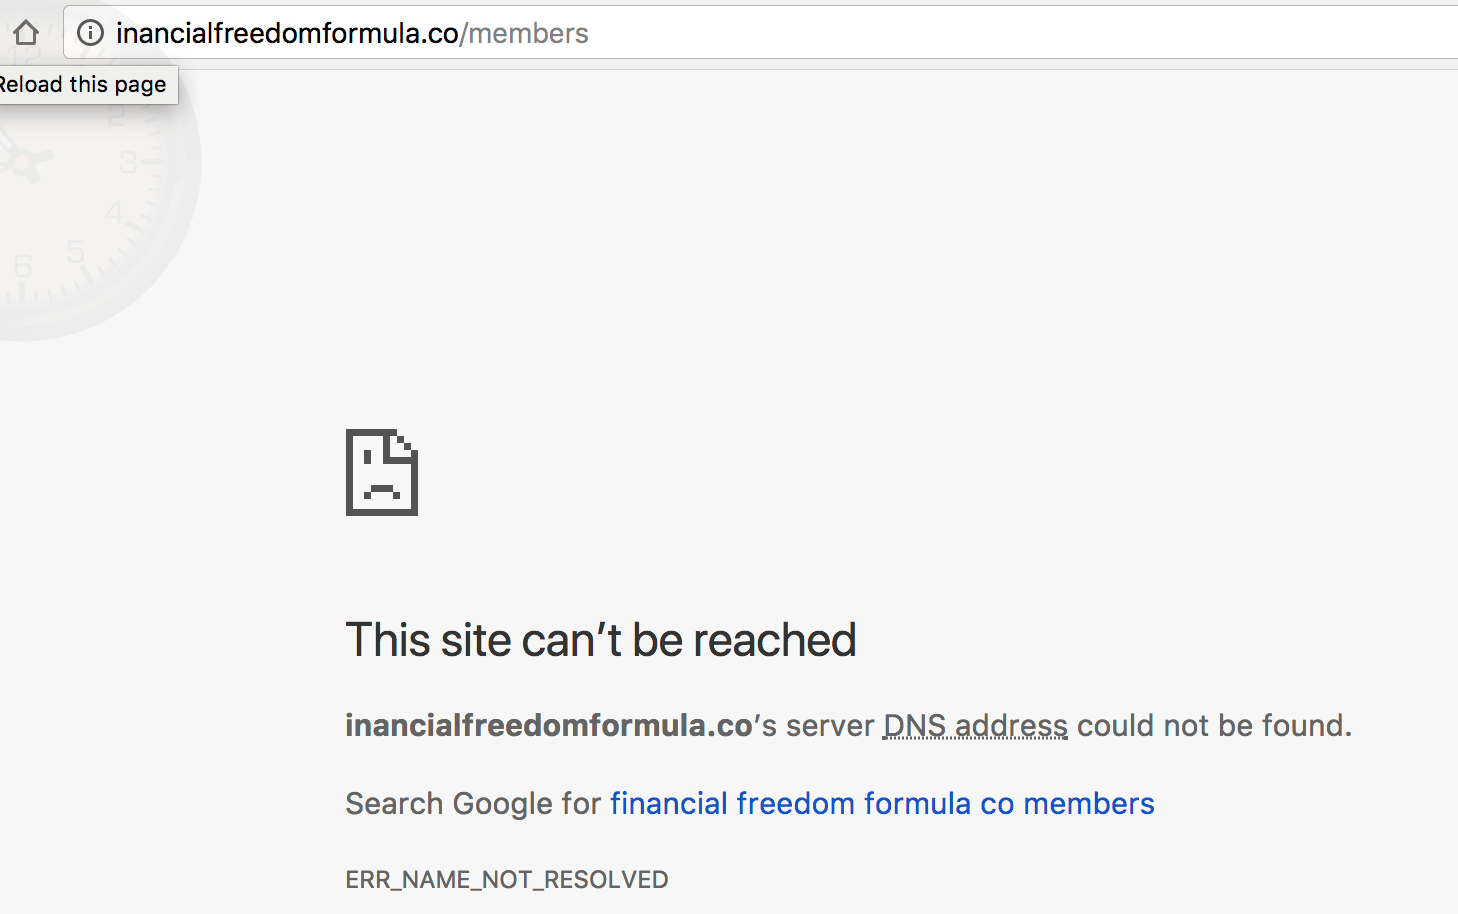 Financial Freedom Formula site is not working